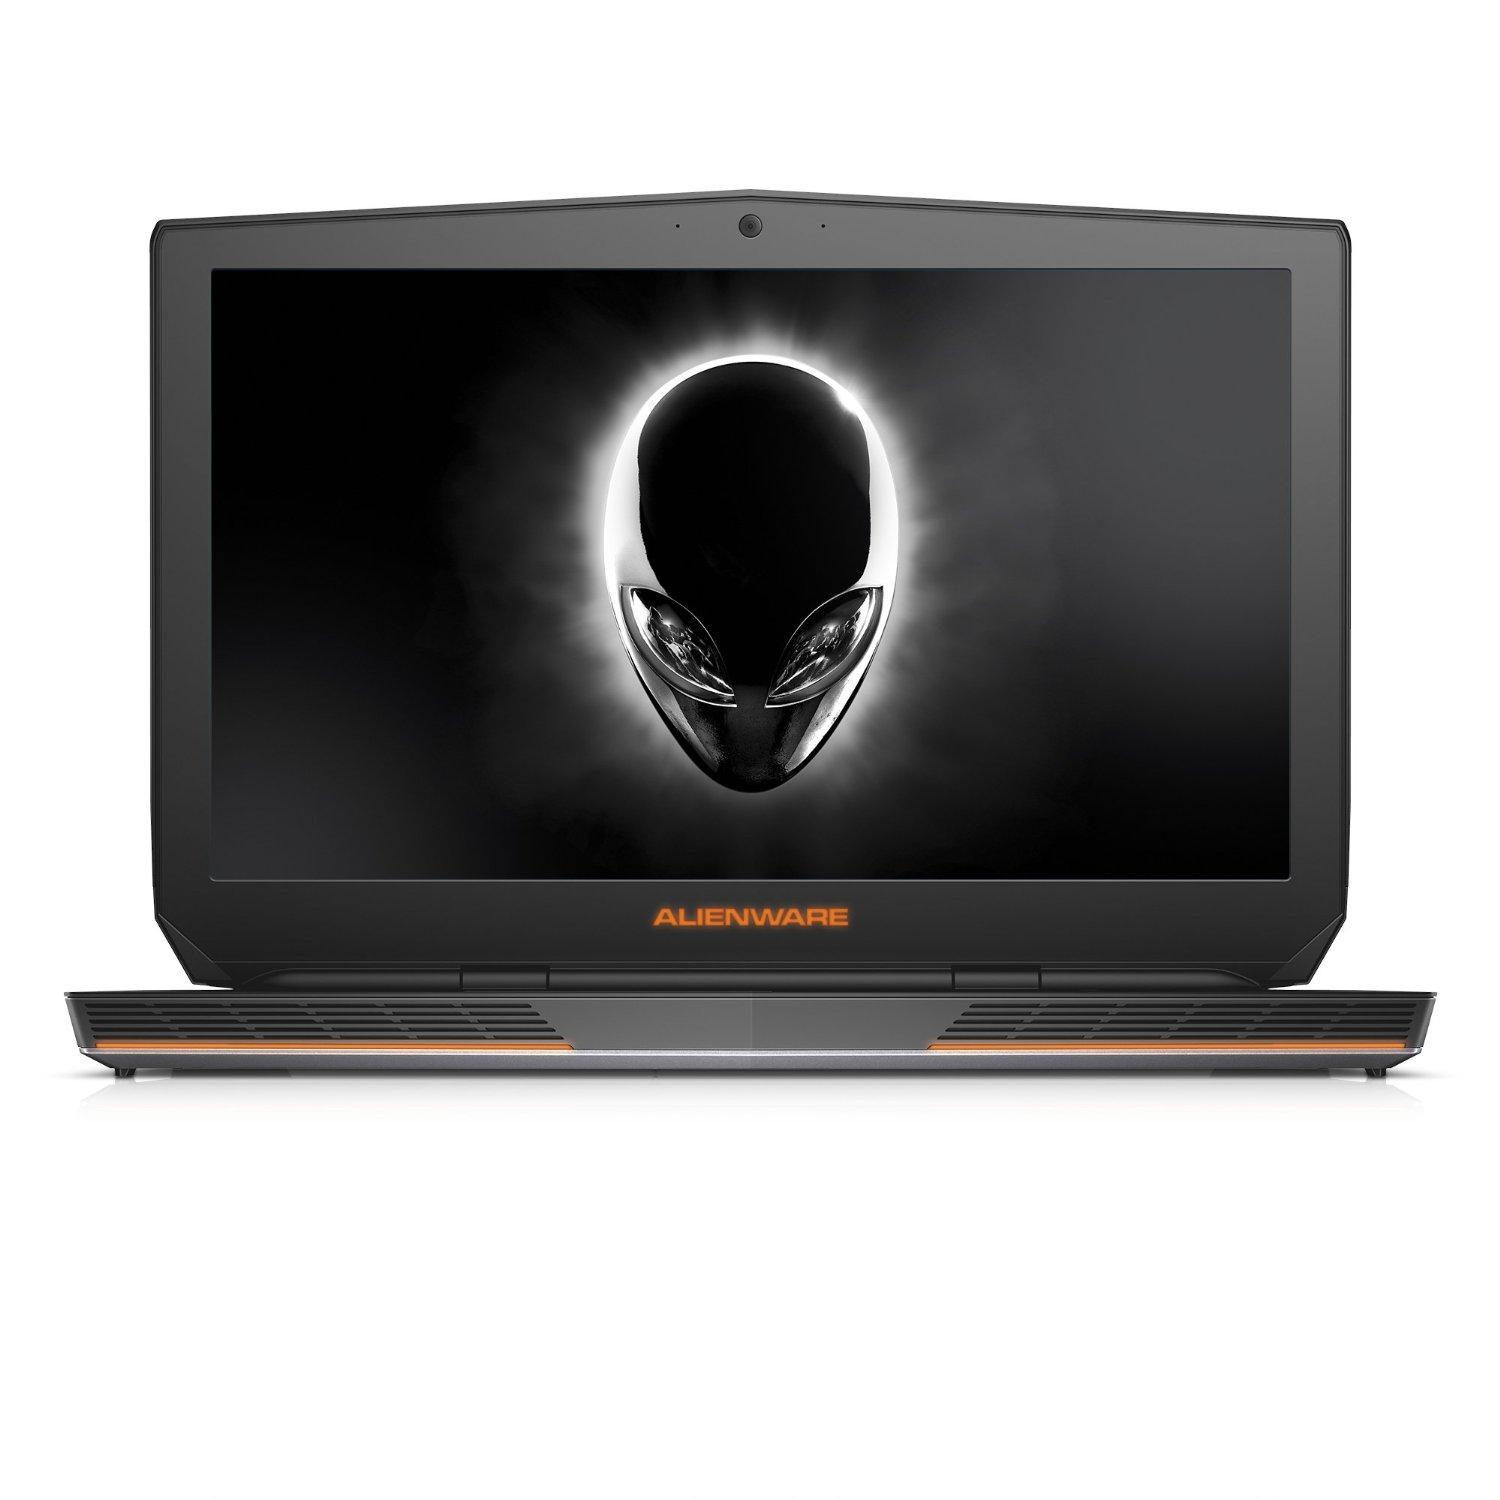 Alienware FHD 17.3-Inch Gaming Laptop